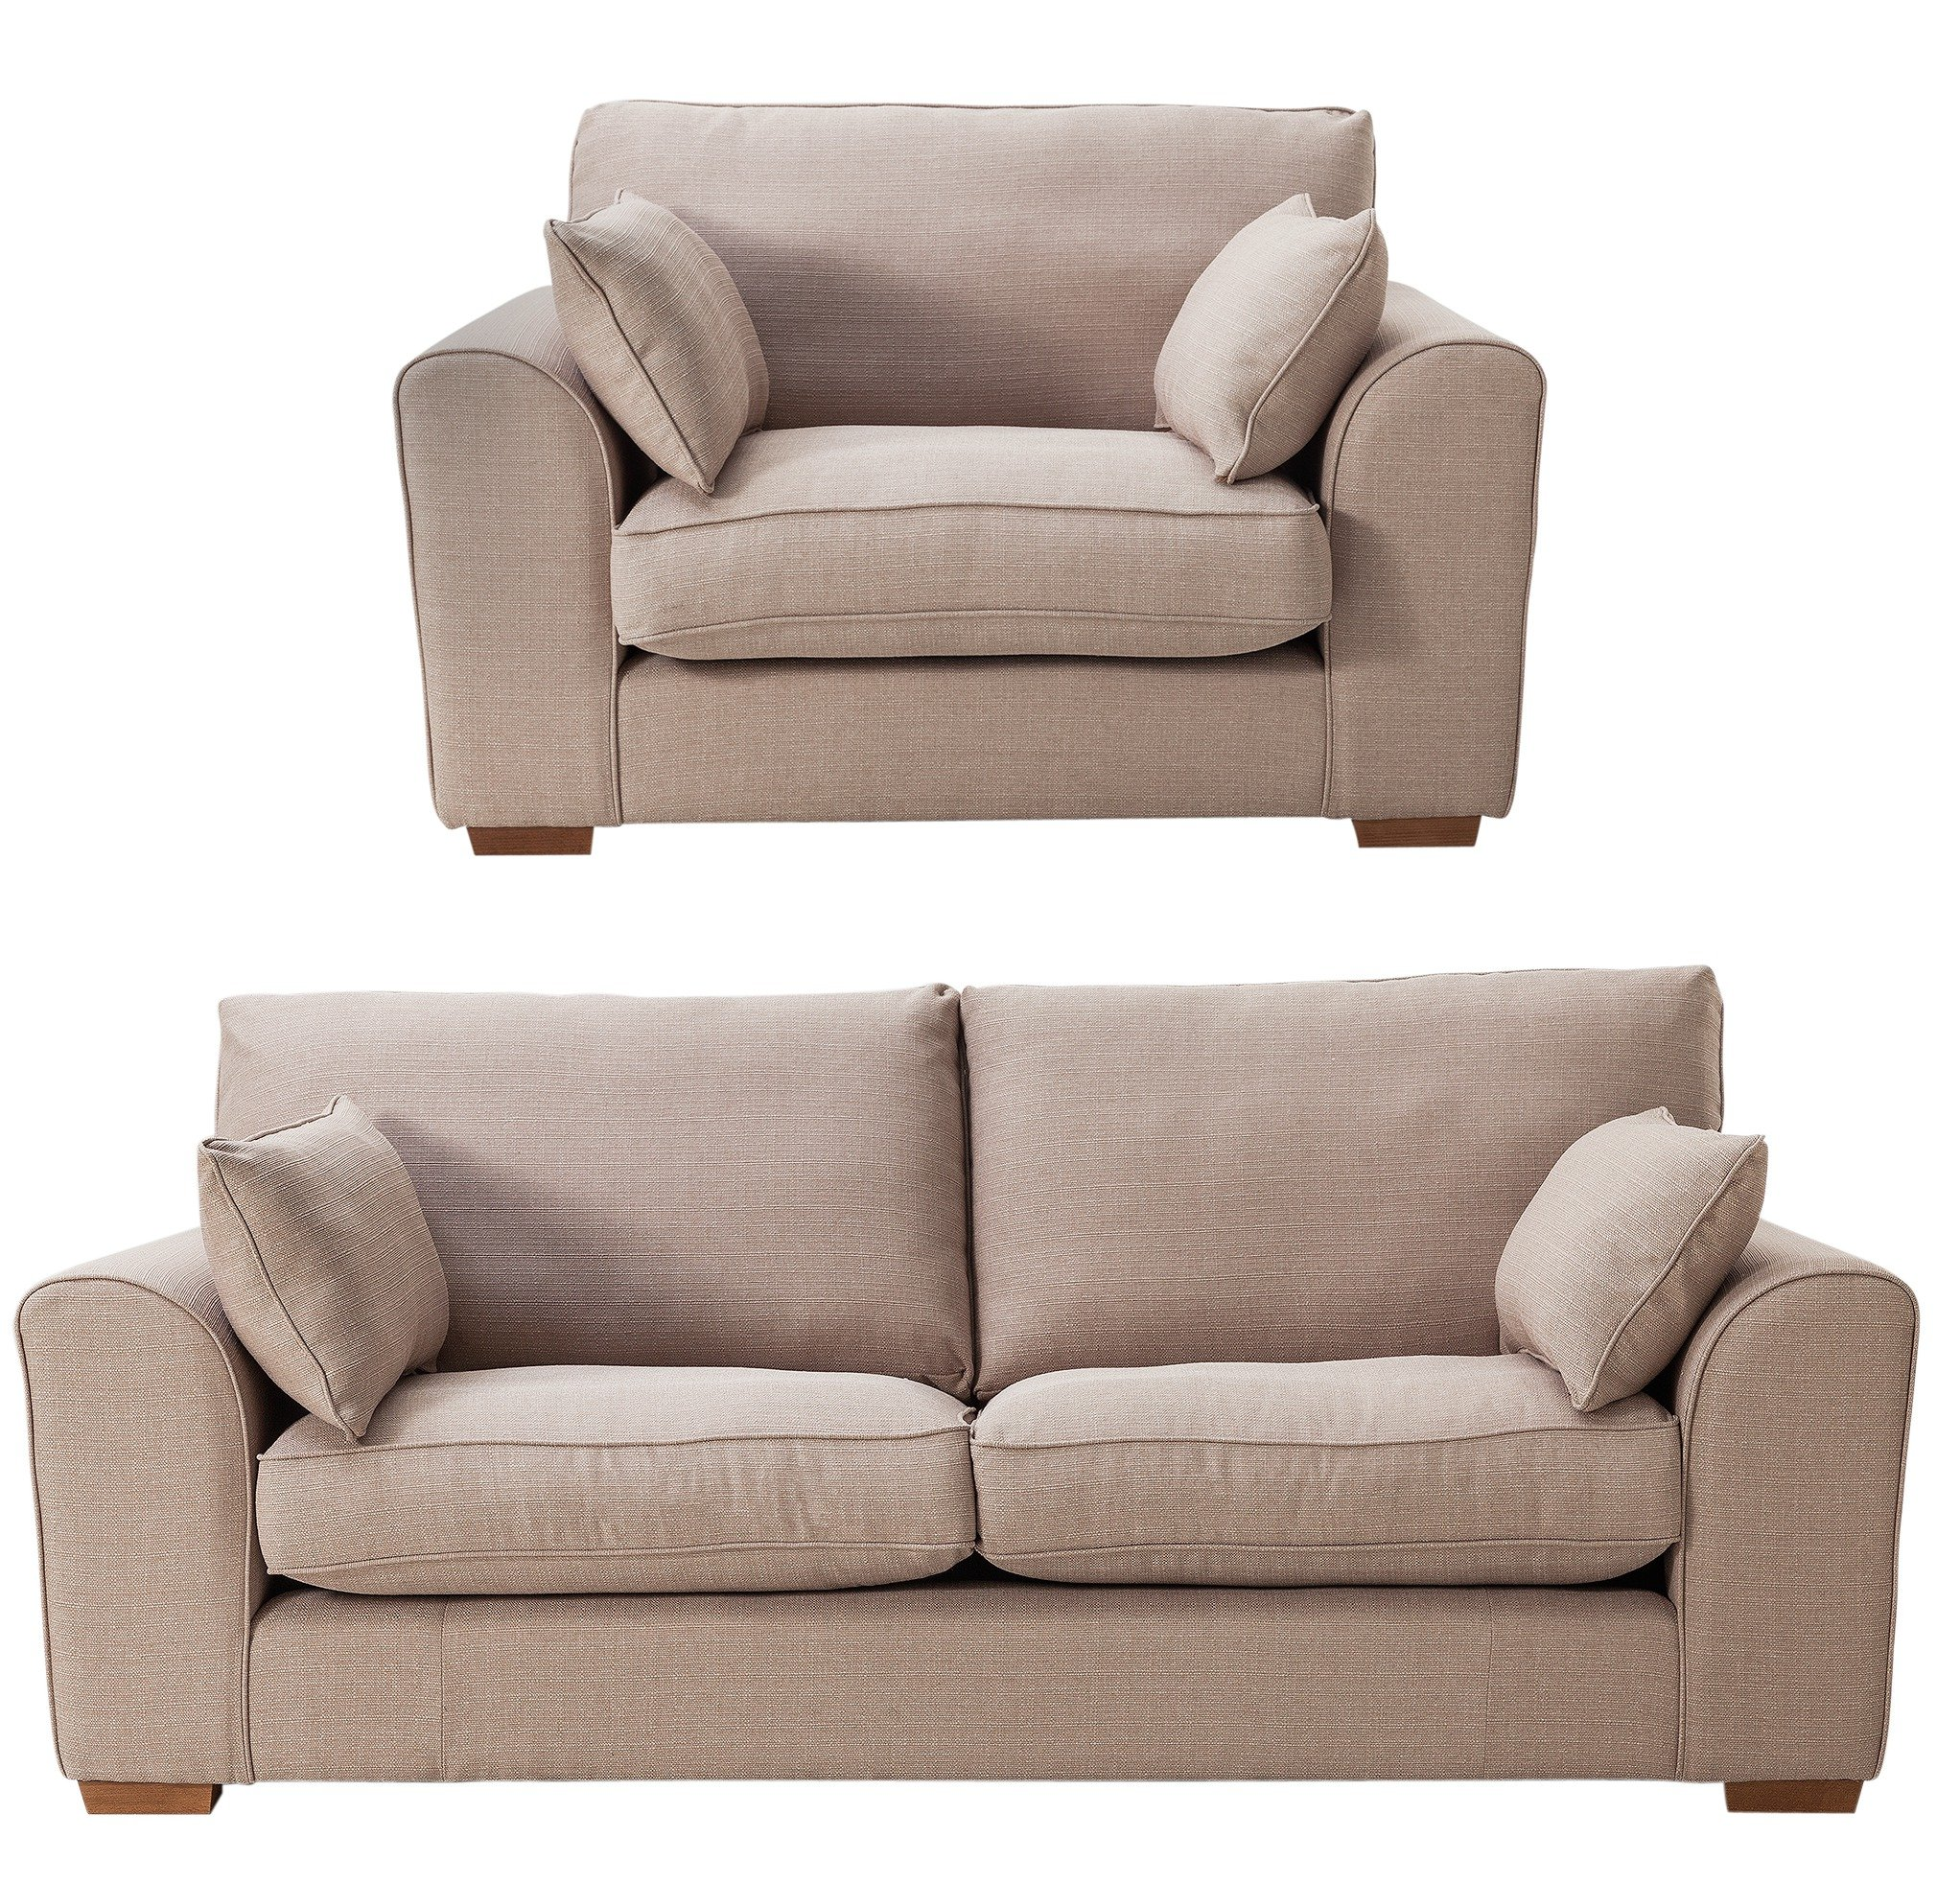 sofa package deals uk set dealers in mumbai sale on collection new ashdown 3 seat and cuddle